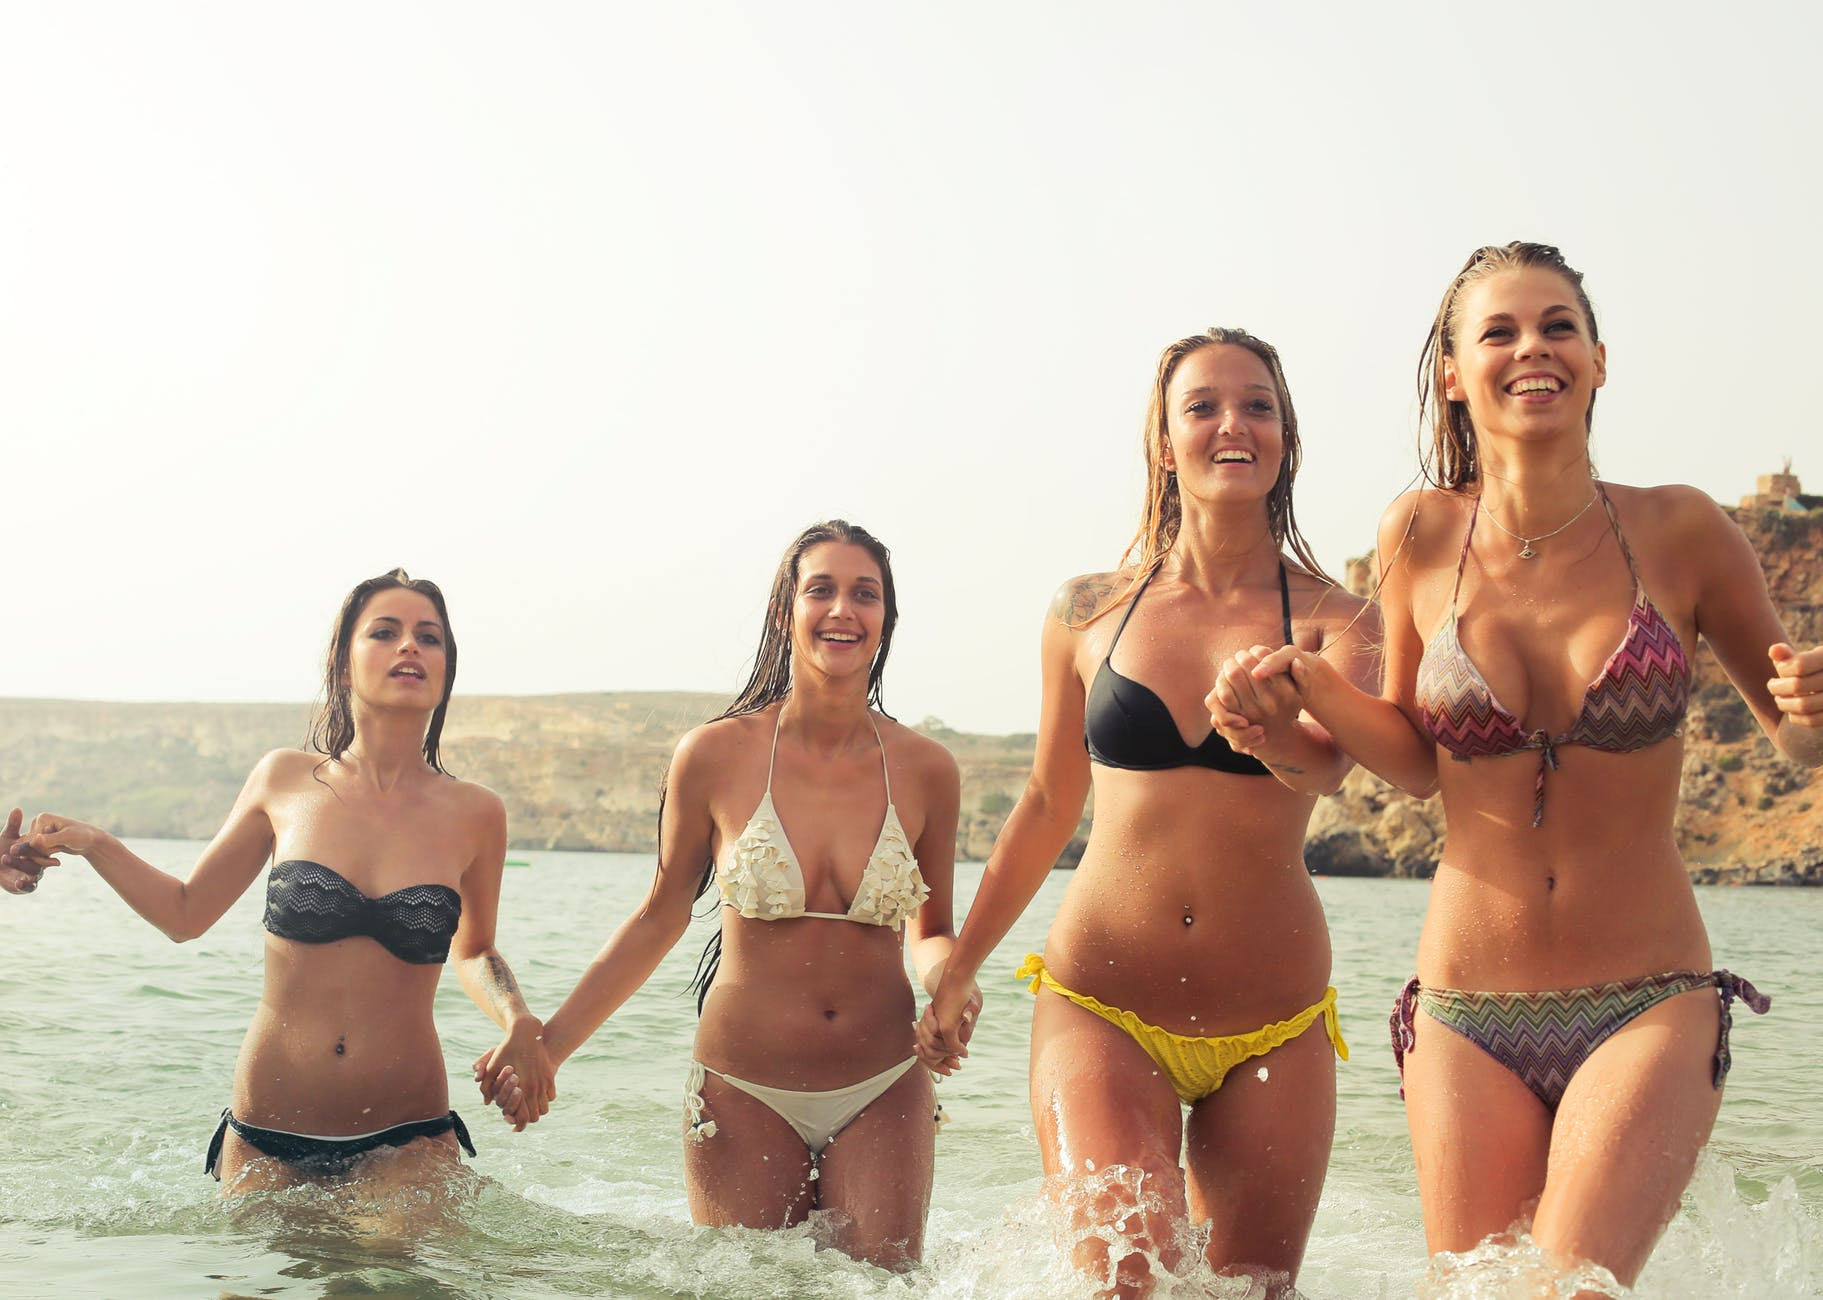 group of woman wearing bikini on body of water